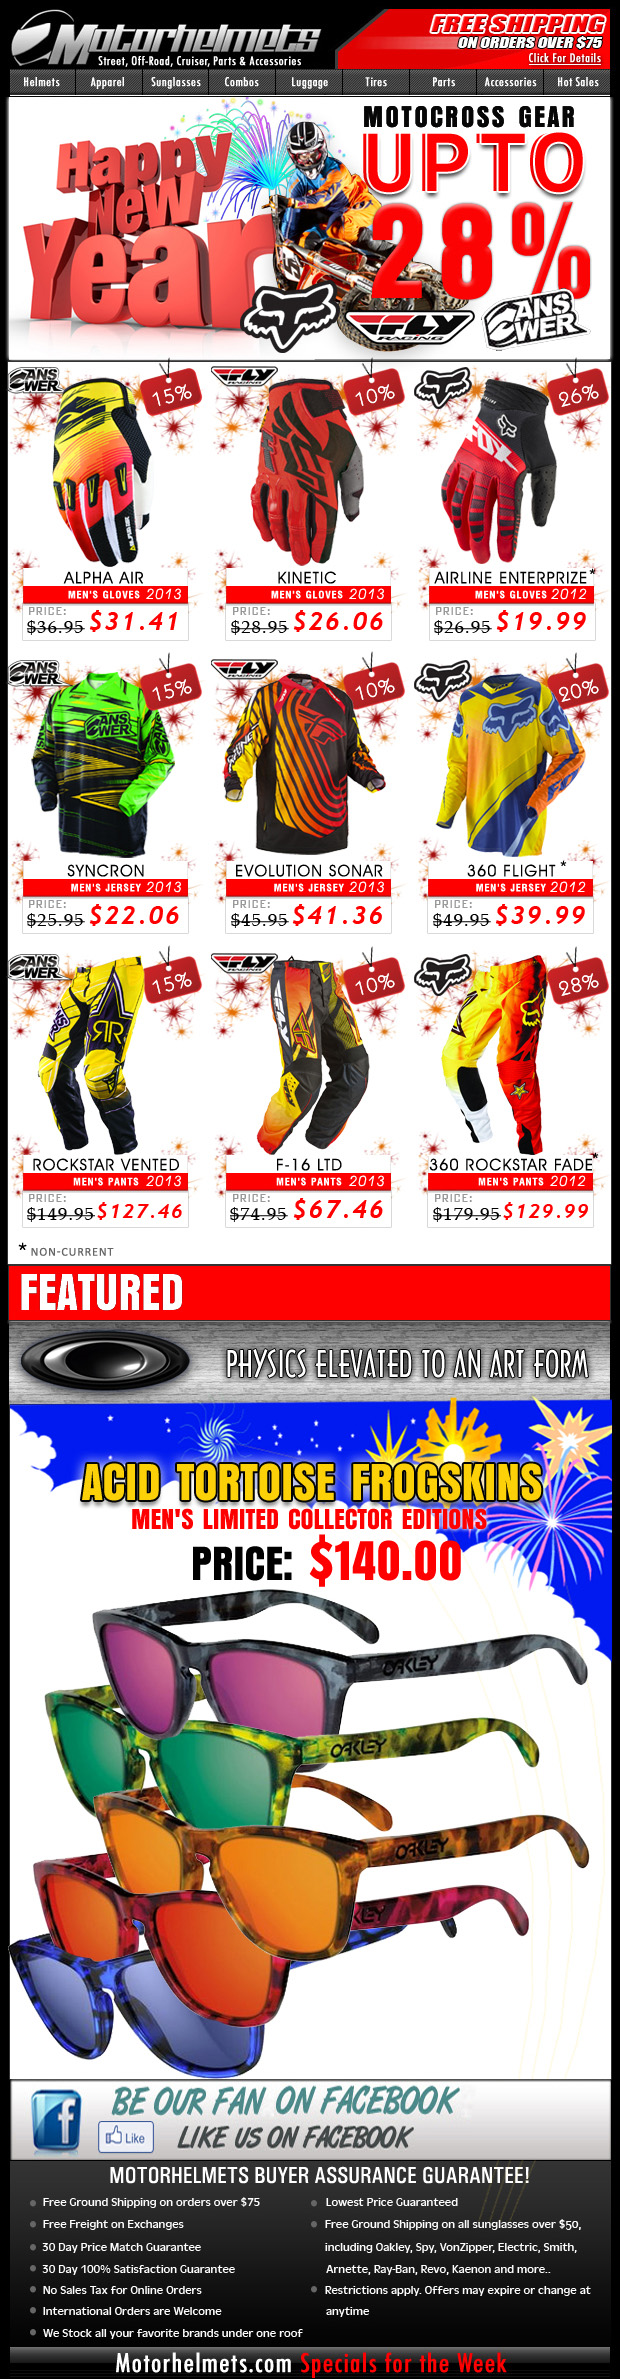 Start 2013 with a BANG with DISCOUNTS on Premium Gear from Fox, Fly and Answer!